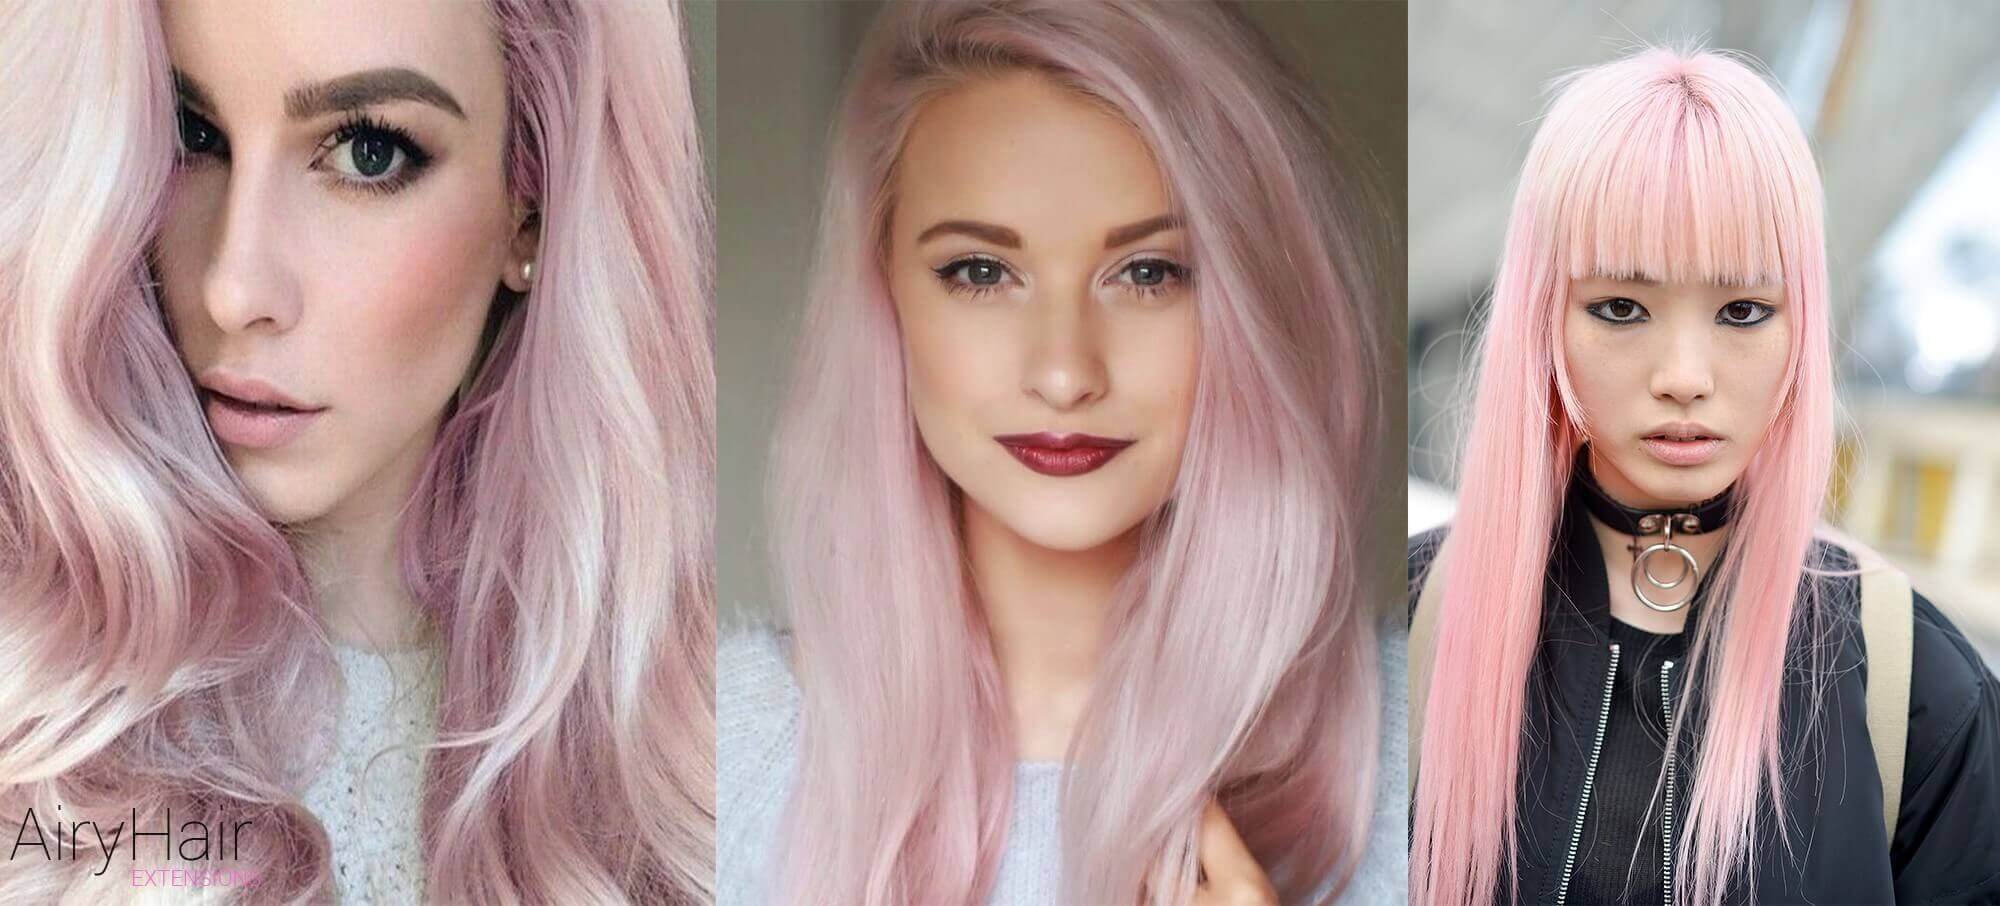 10 Amazing Ideas And Inspirations For Pink Hair Extension Users